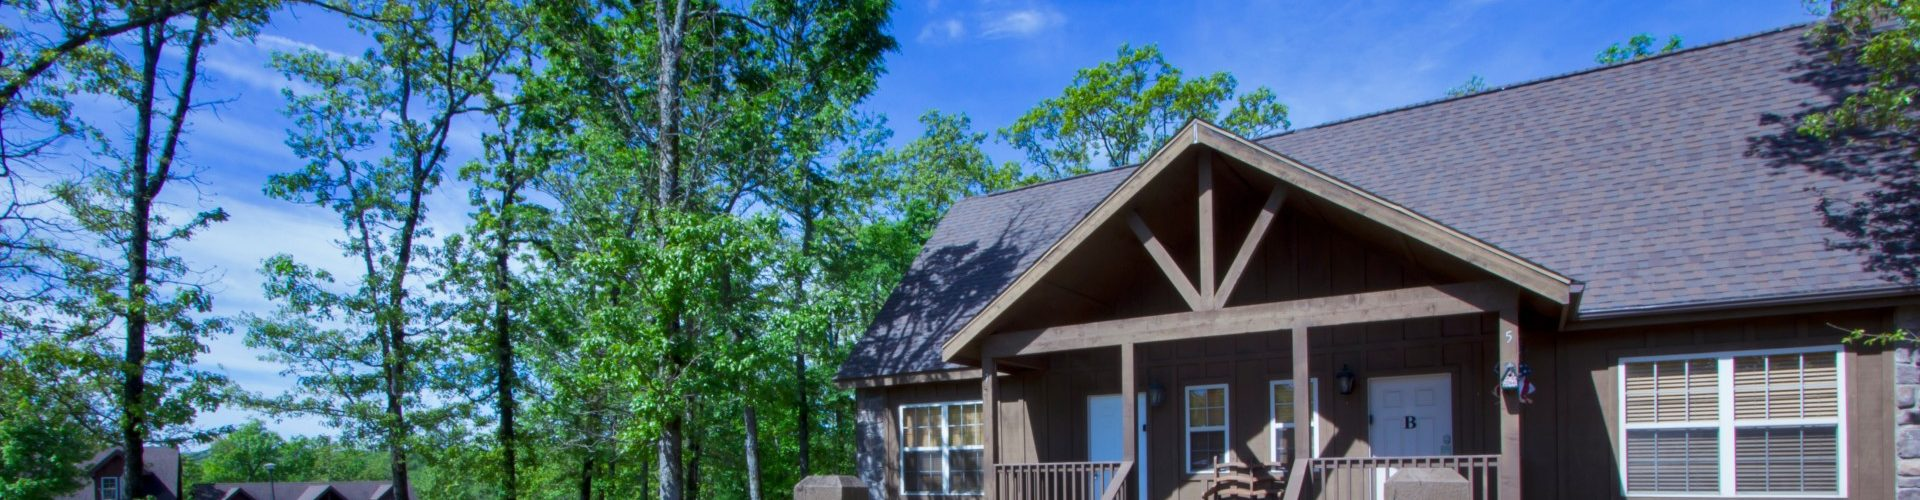 1 Bedroom Cabins in Branson, Missouri